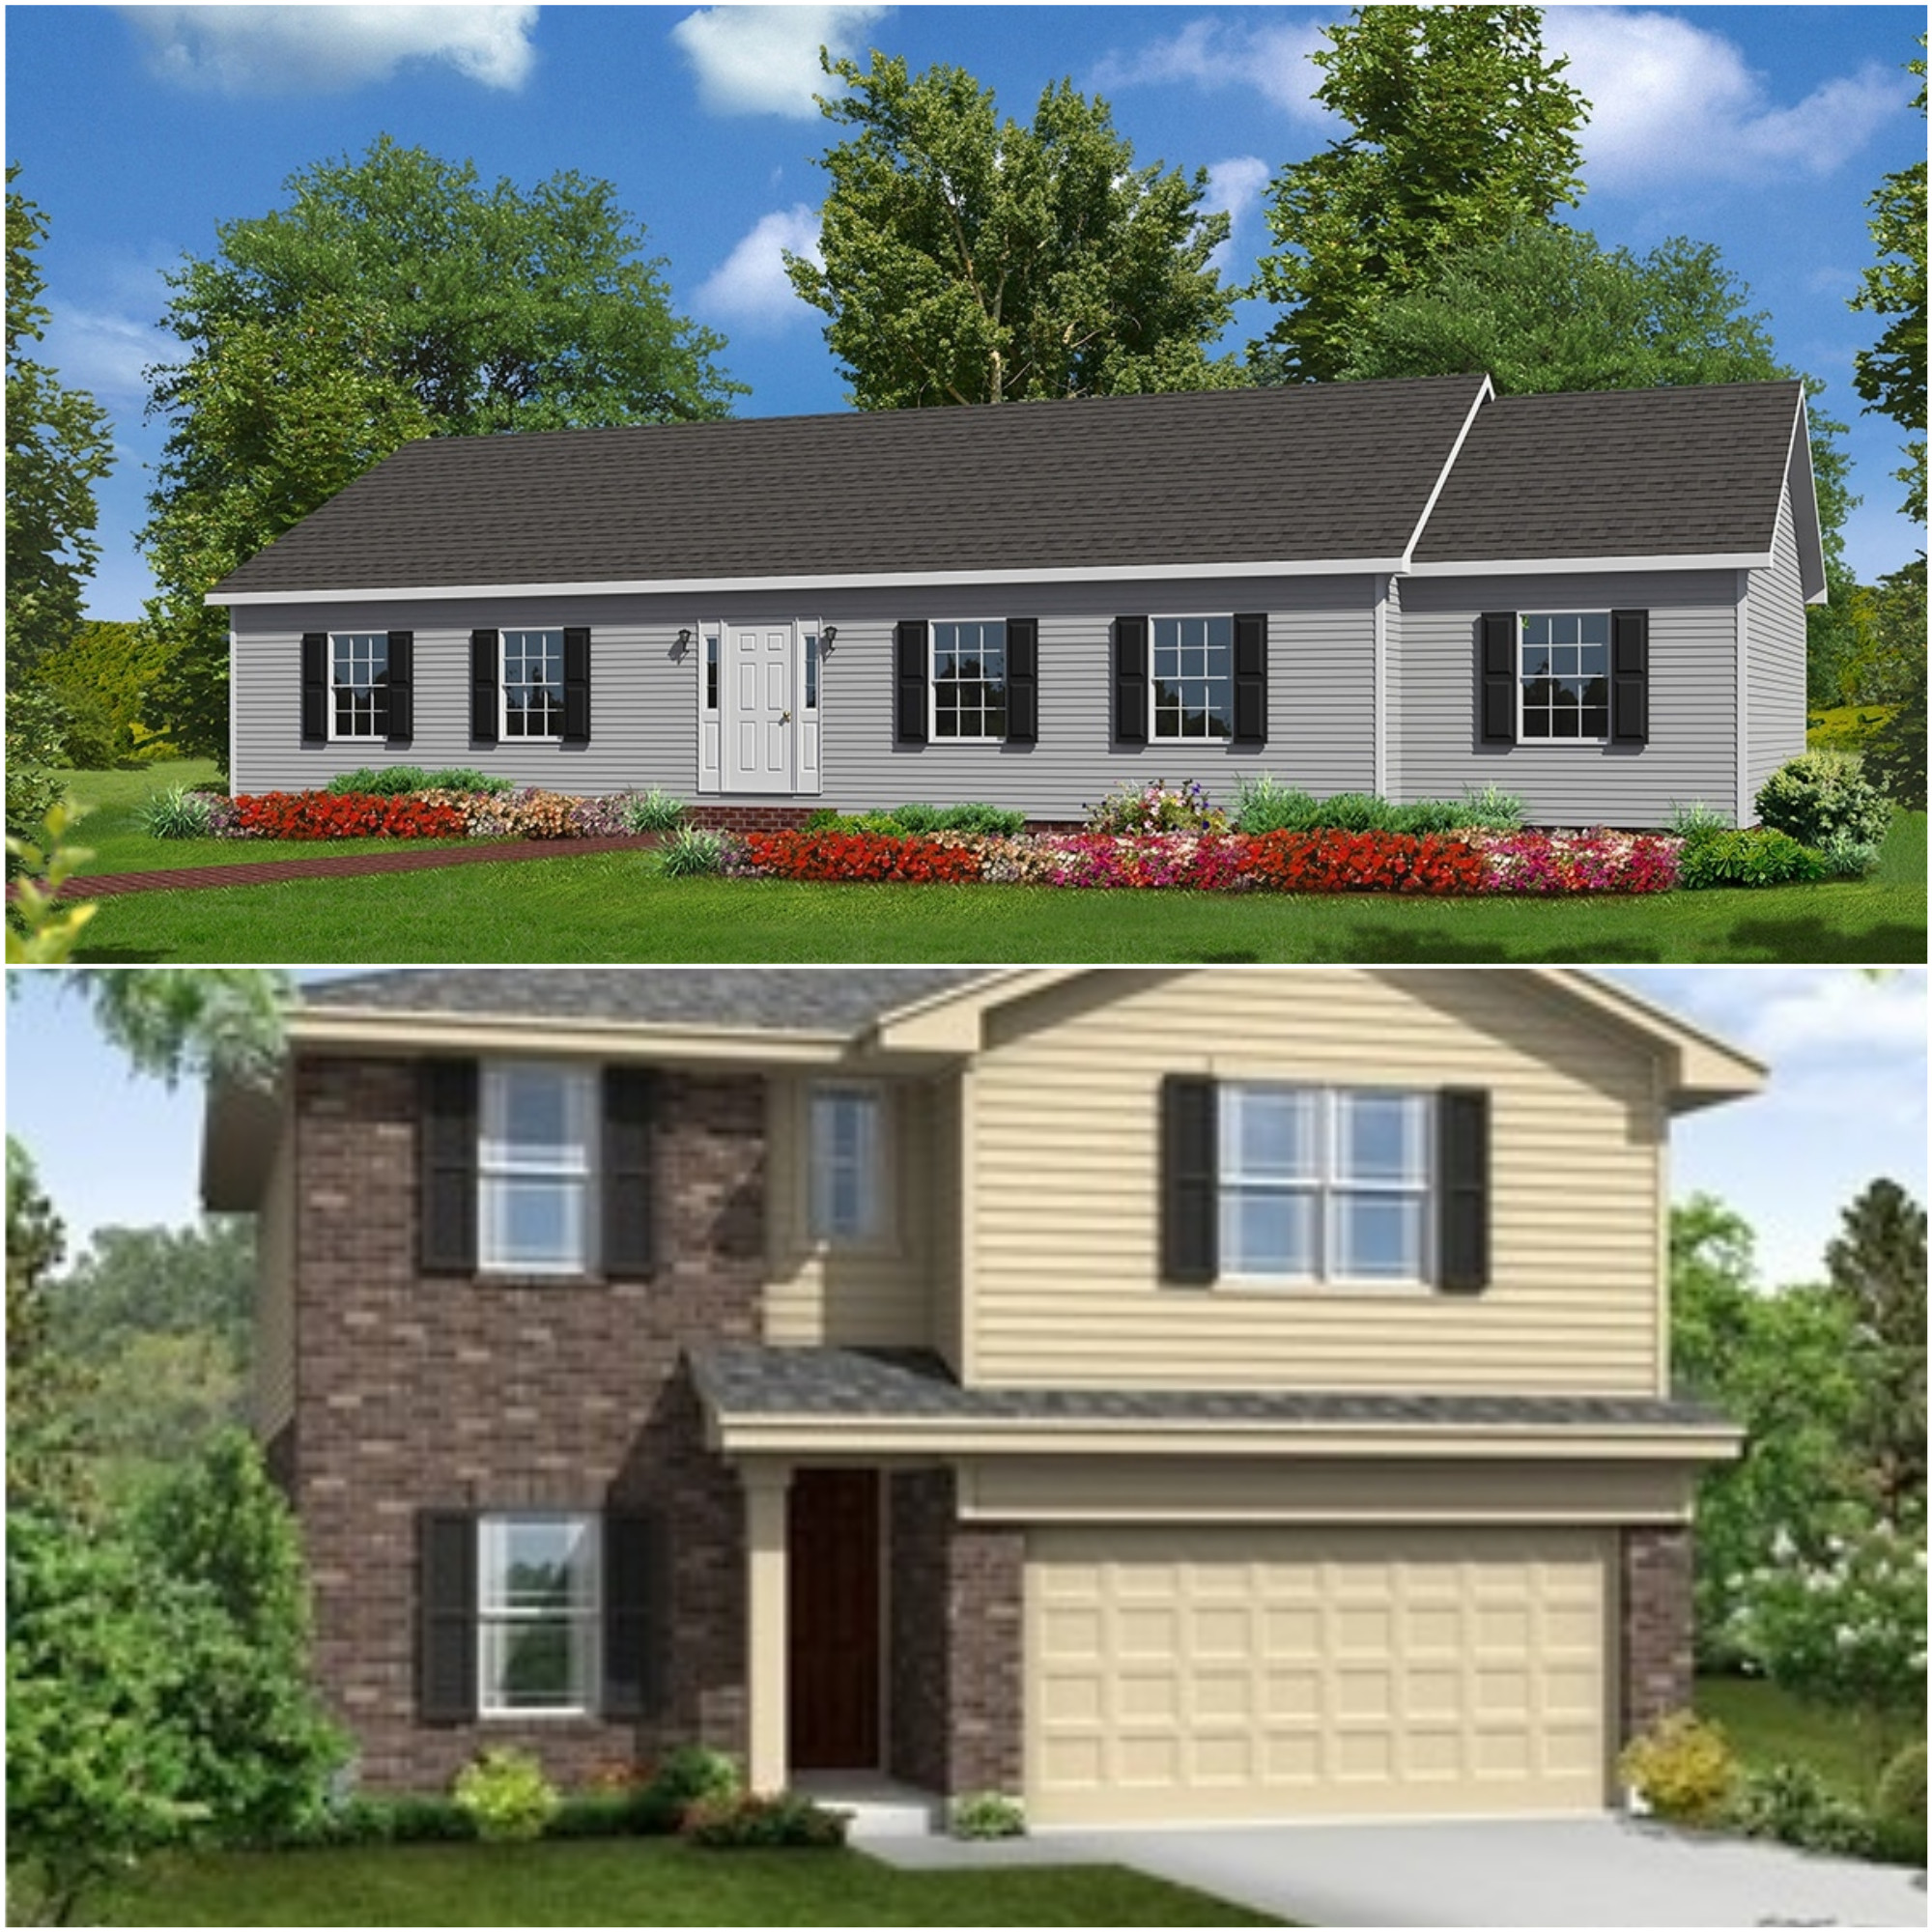 1800 Sq Ft Home or 30 Exterior Panes